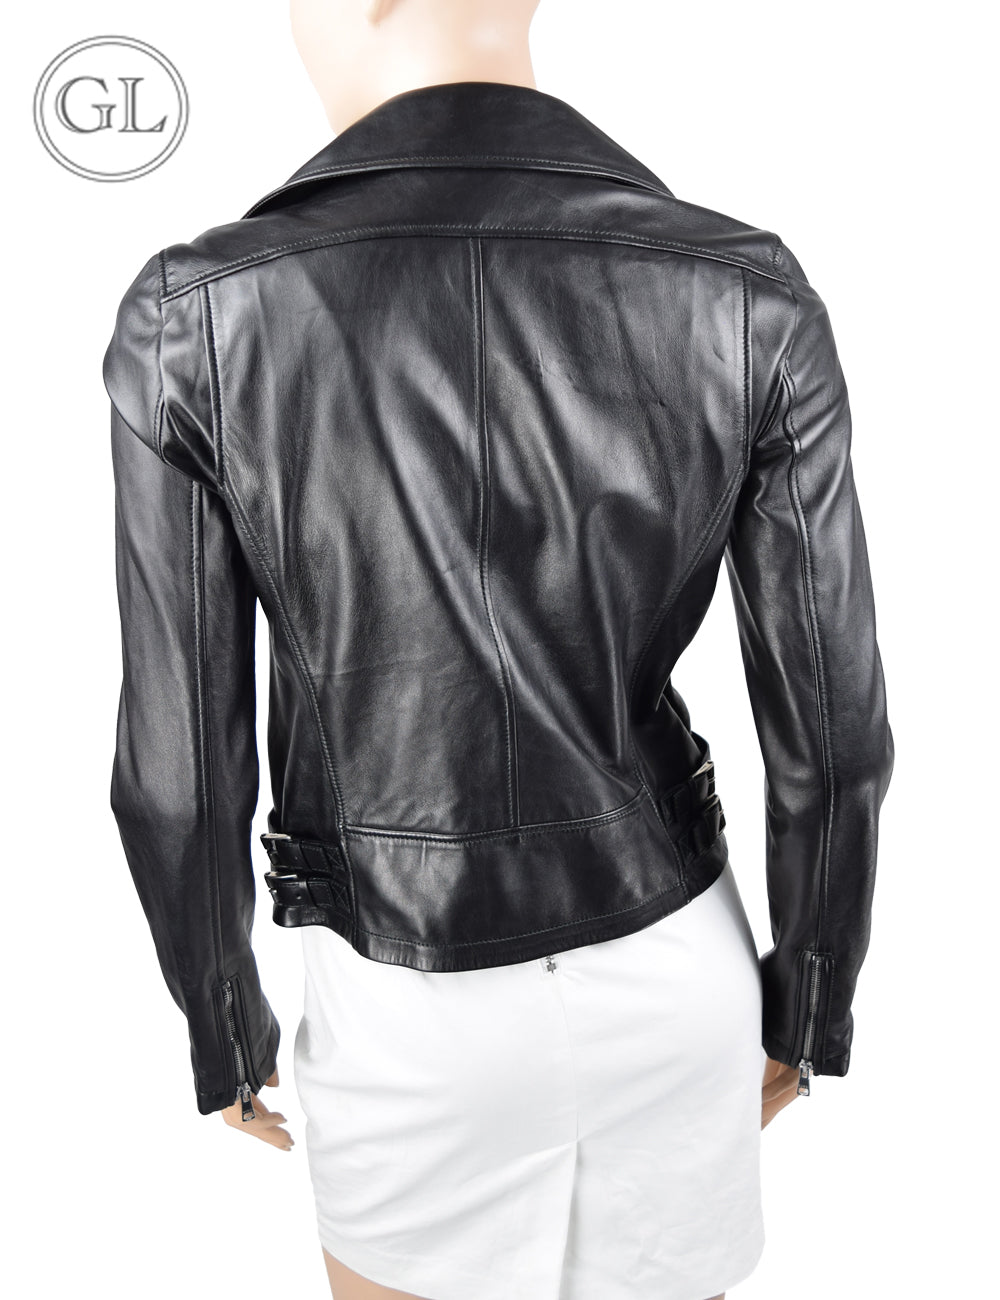 Gucci Black Leather Jacket - US 8